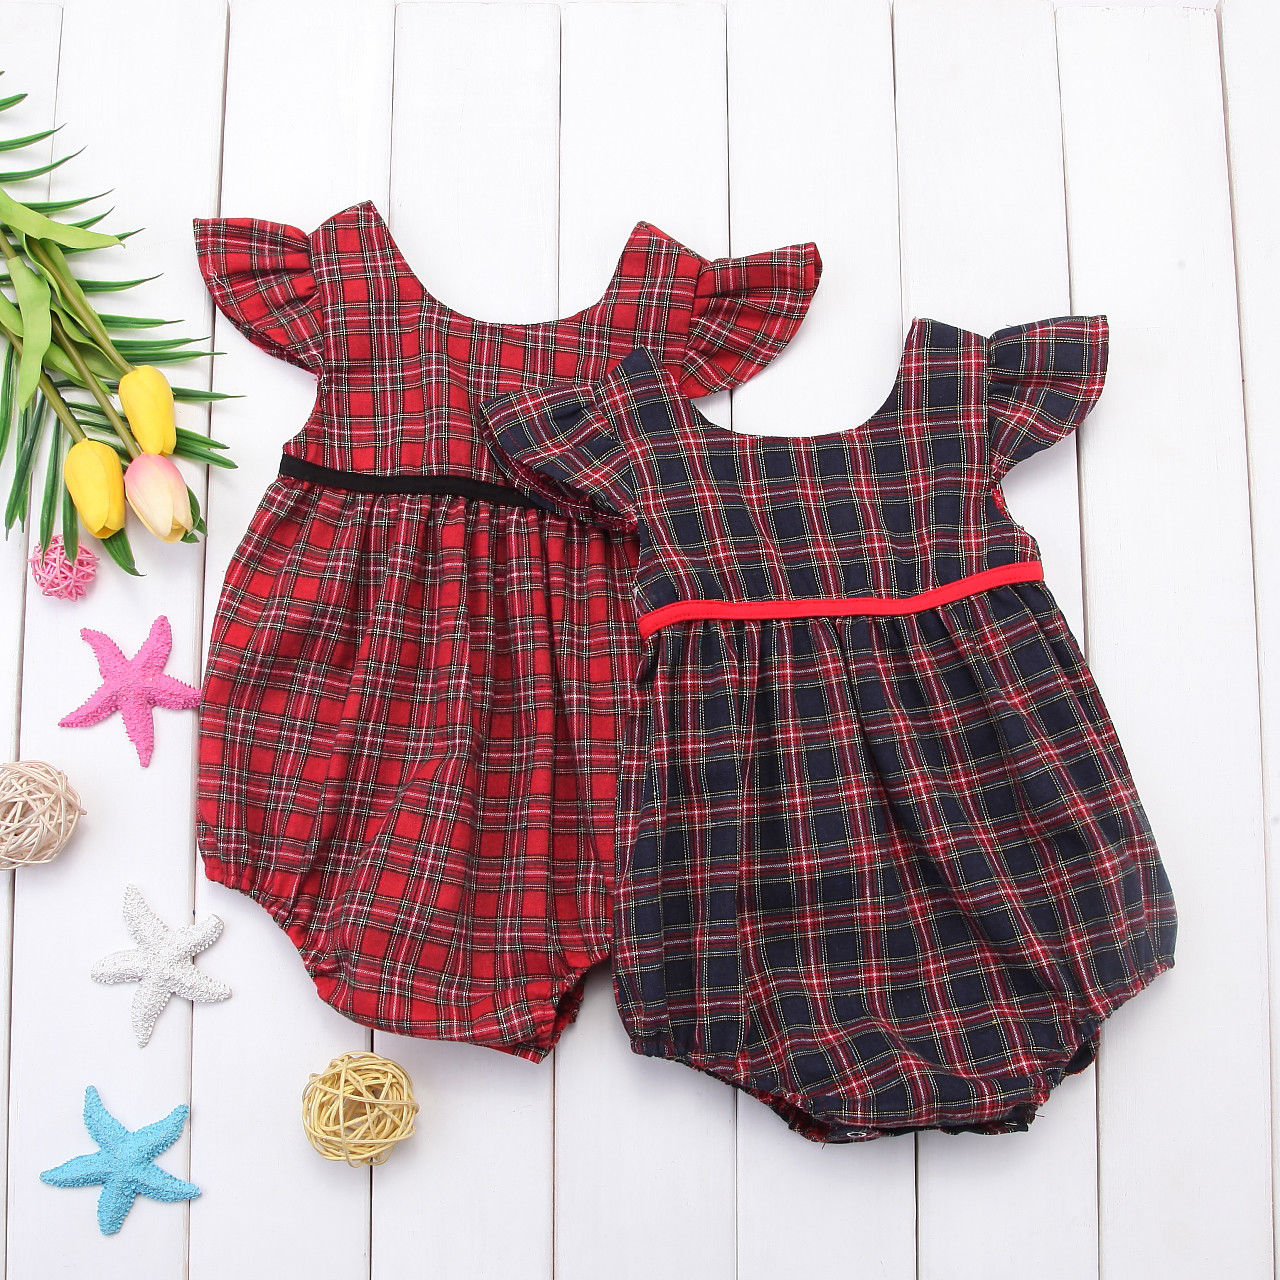 Newborn Baby Girl Plaid Romper Summer Corset Red Blue Plaid Romper Jumpsuit Cotton suit Outfits Summer plaid